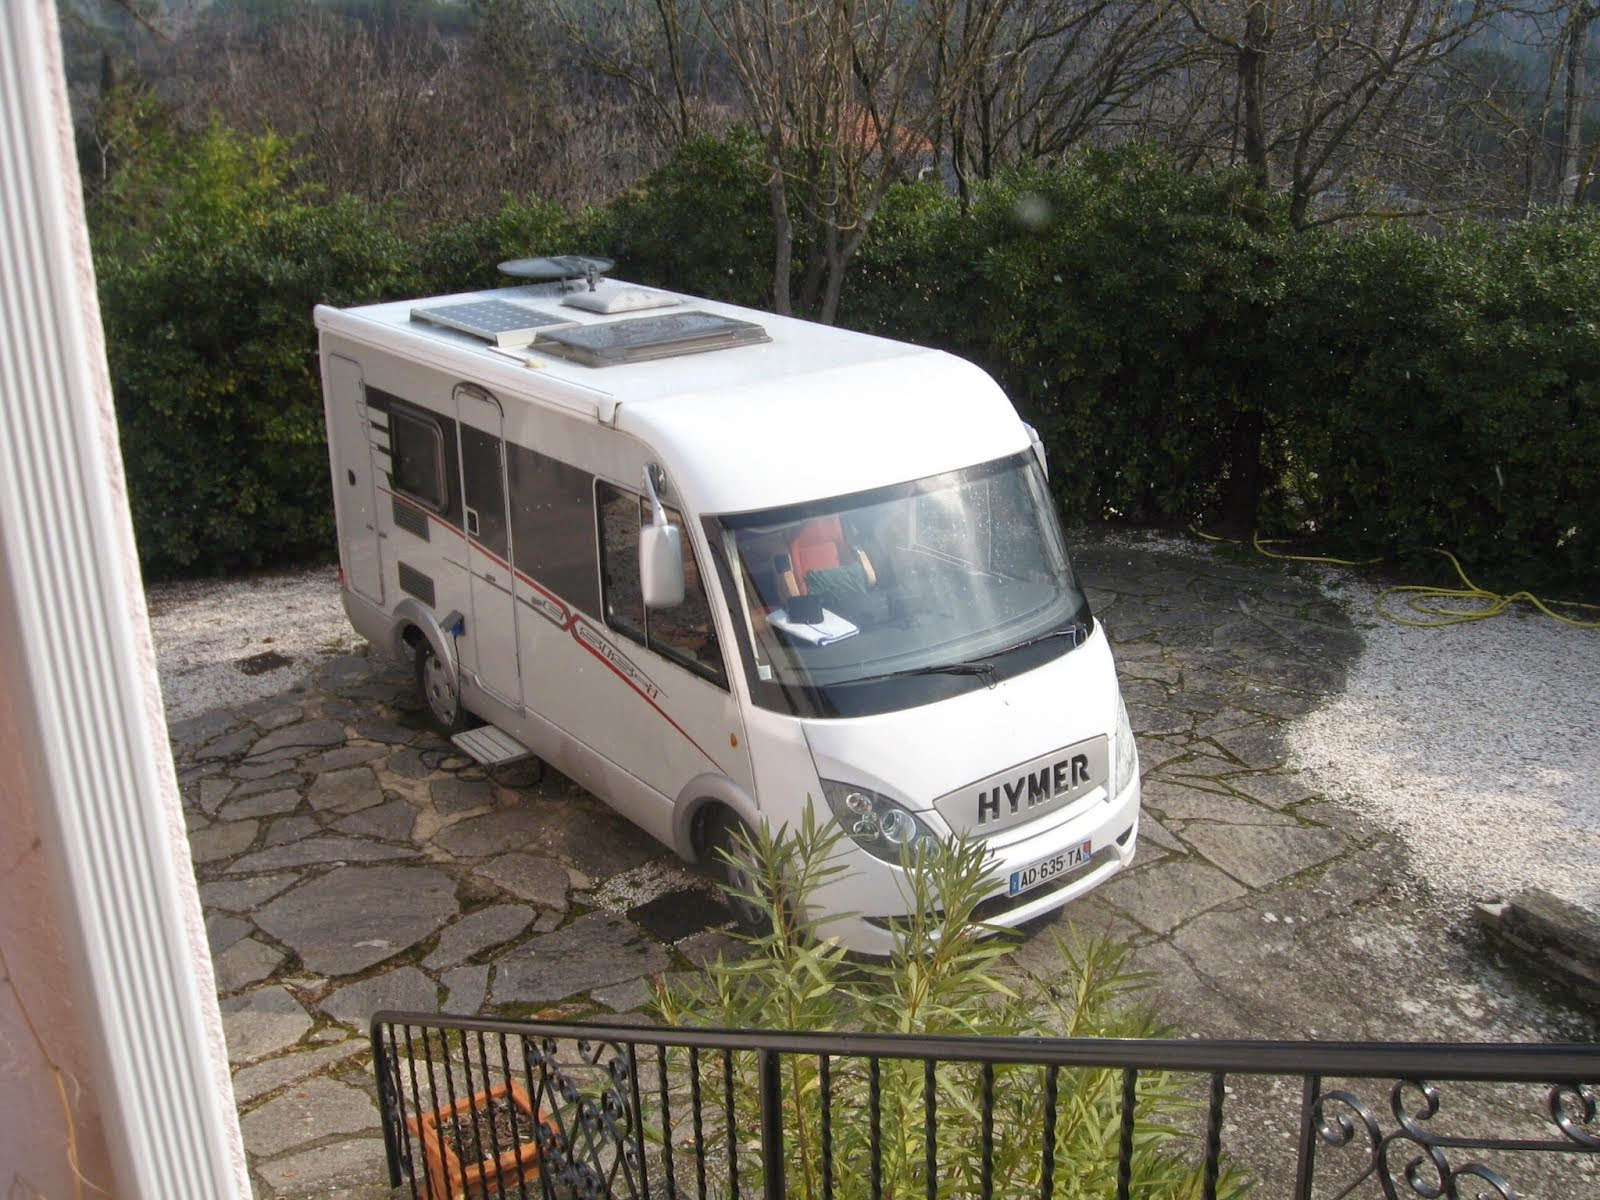 Our first motorhome